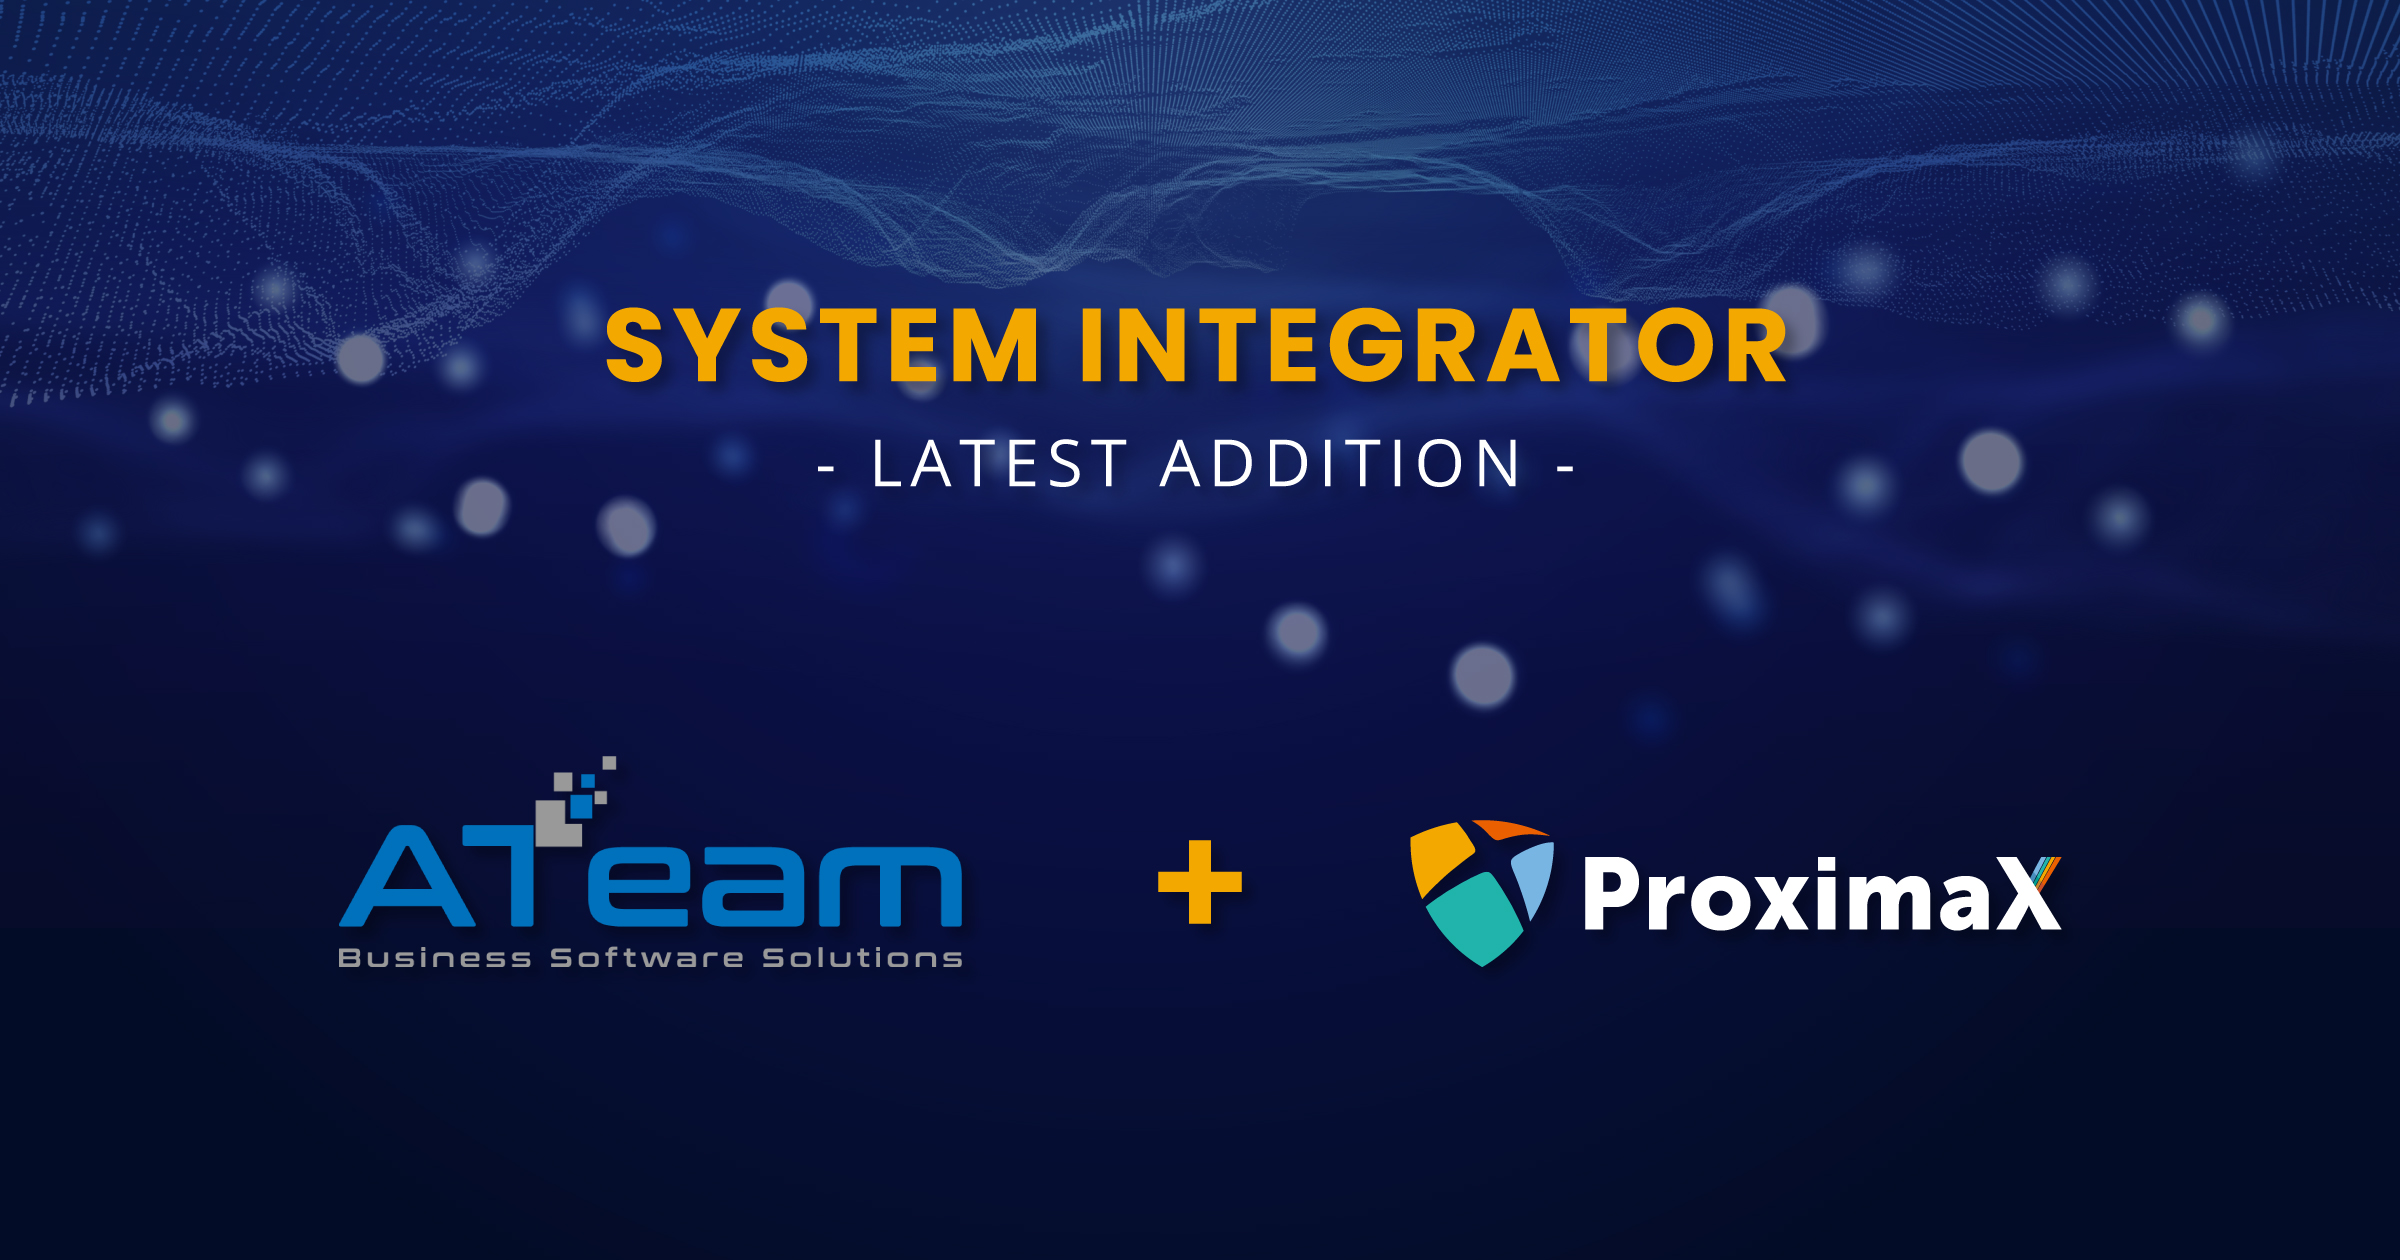 ProximaX Appoints ATeam Business Software Solutions as System Integrator